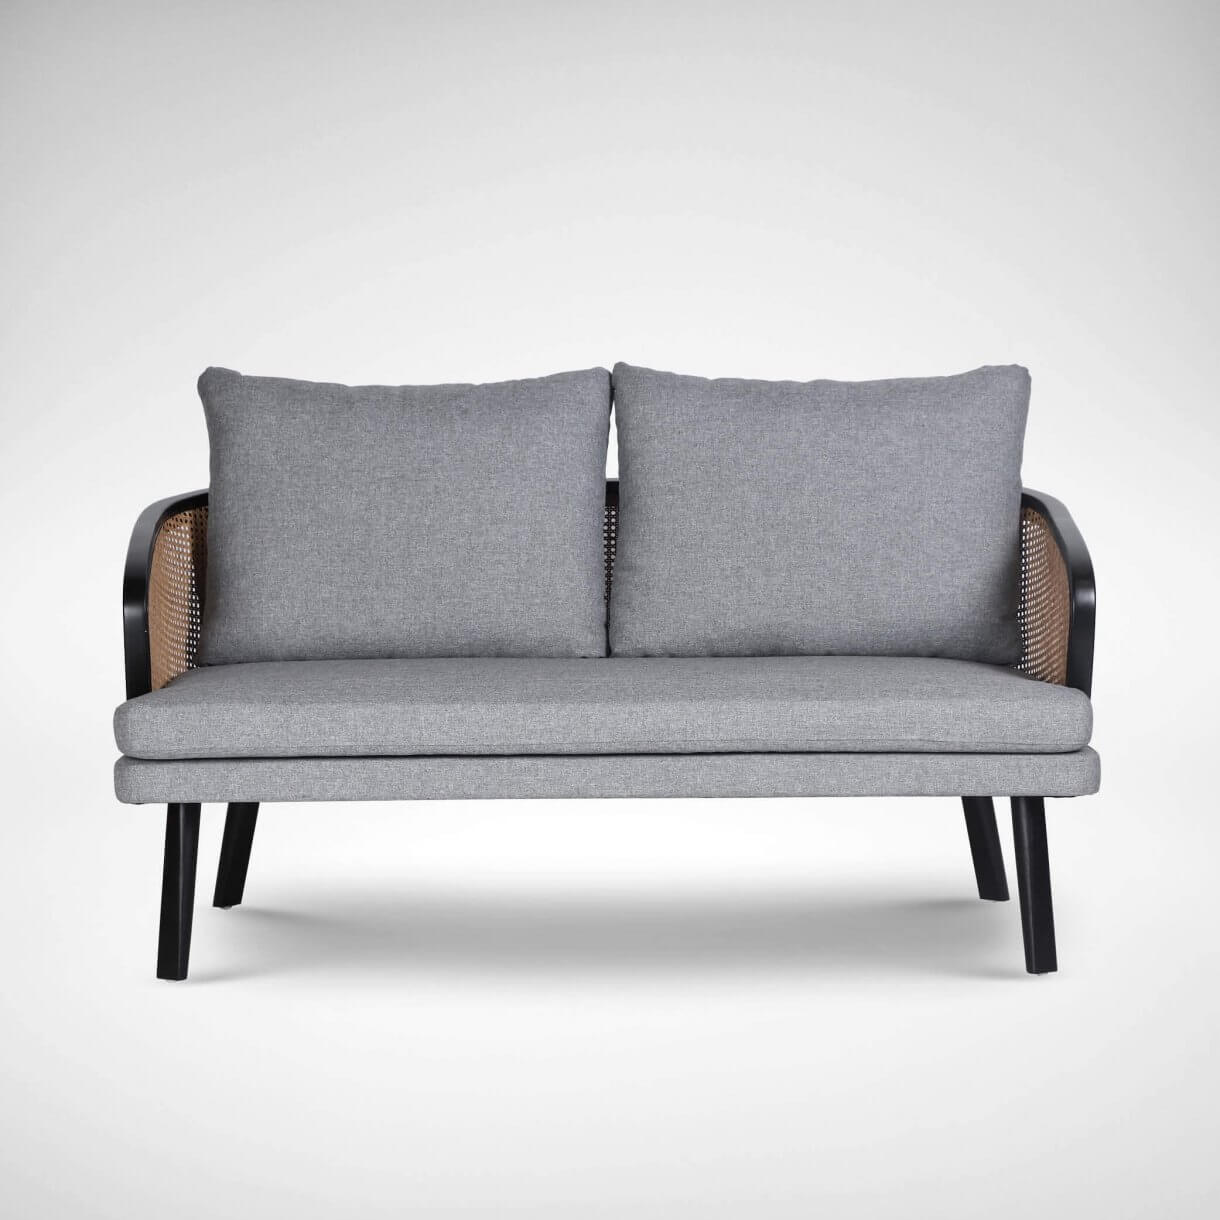 Add a Touch of Vintage Feel with 2-Seater Rafael Rattan Sofa - Comfort Furniture